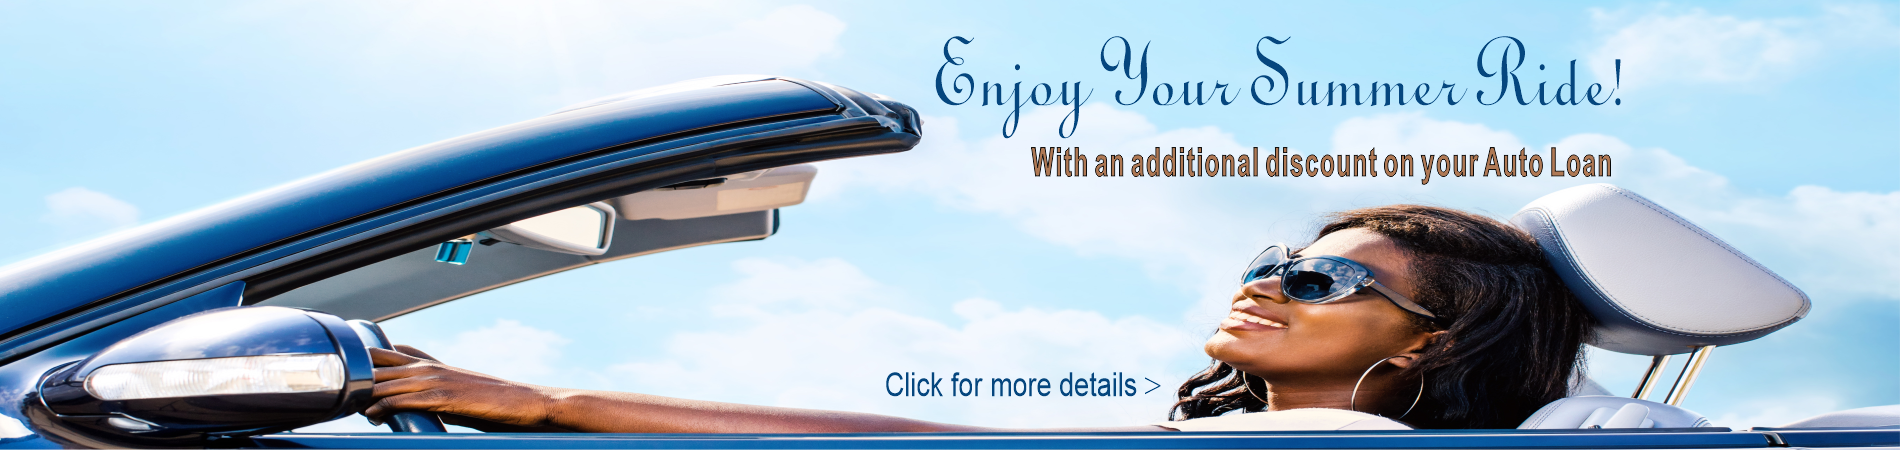 Enjoy Your Summer Ride! With an additional discount on your Auto Loan